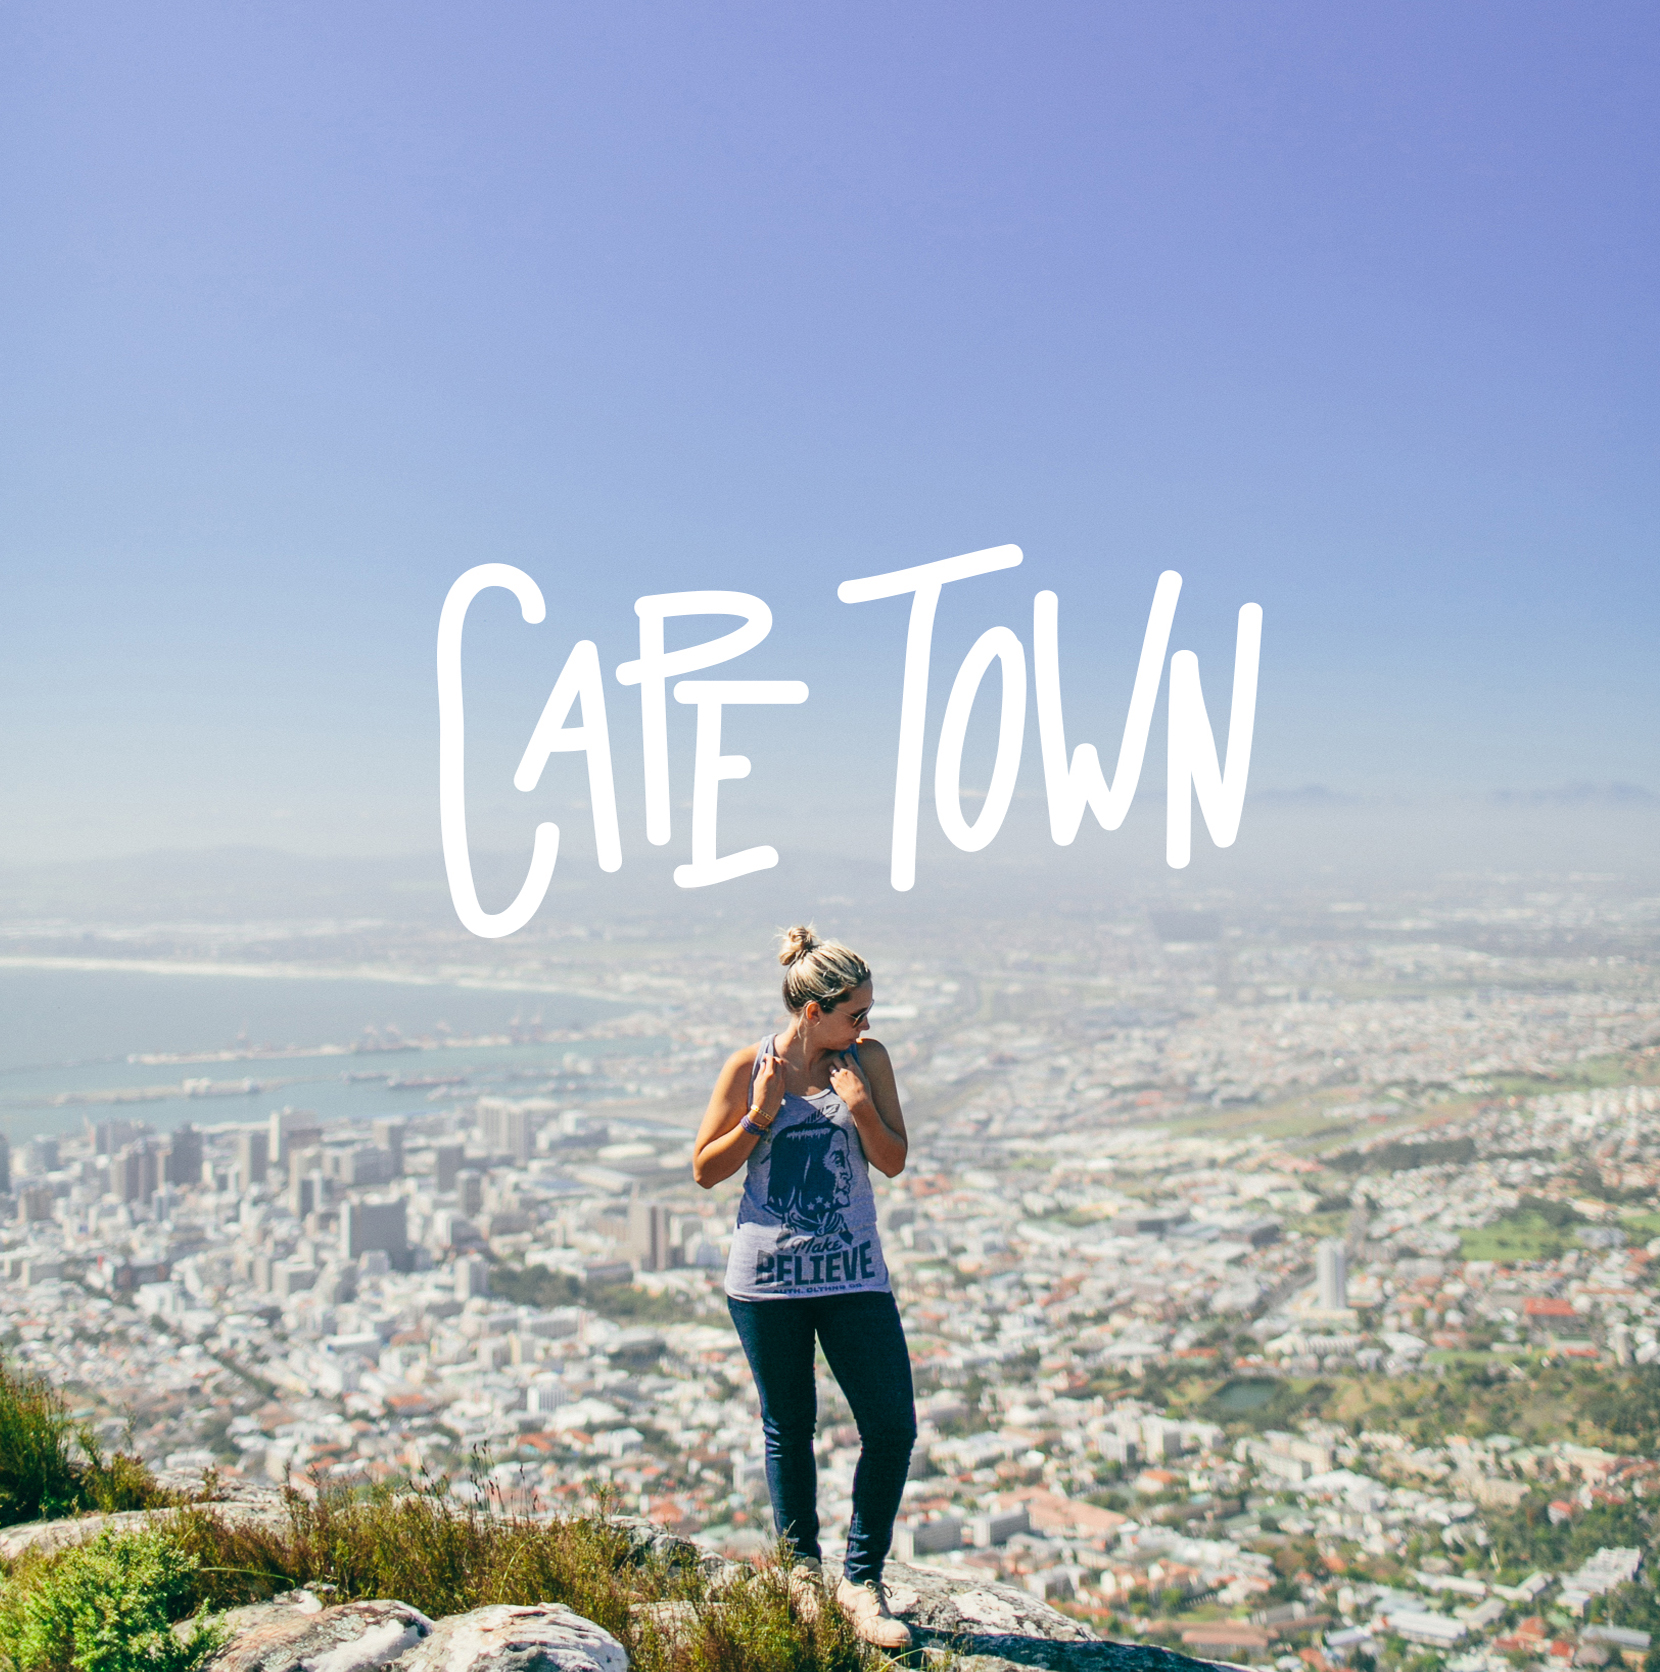 Cape Town Love - Collab of Wild Measure and Over | The Fresh Exchange